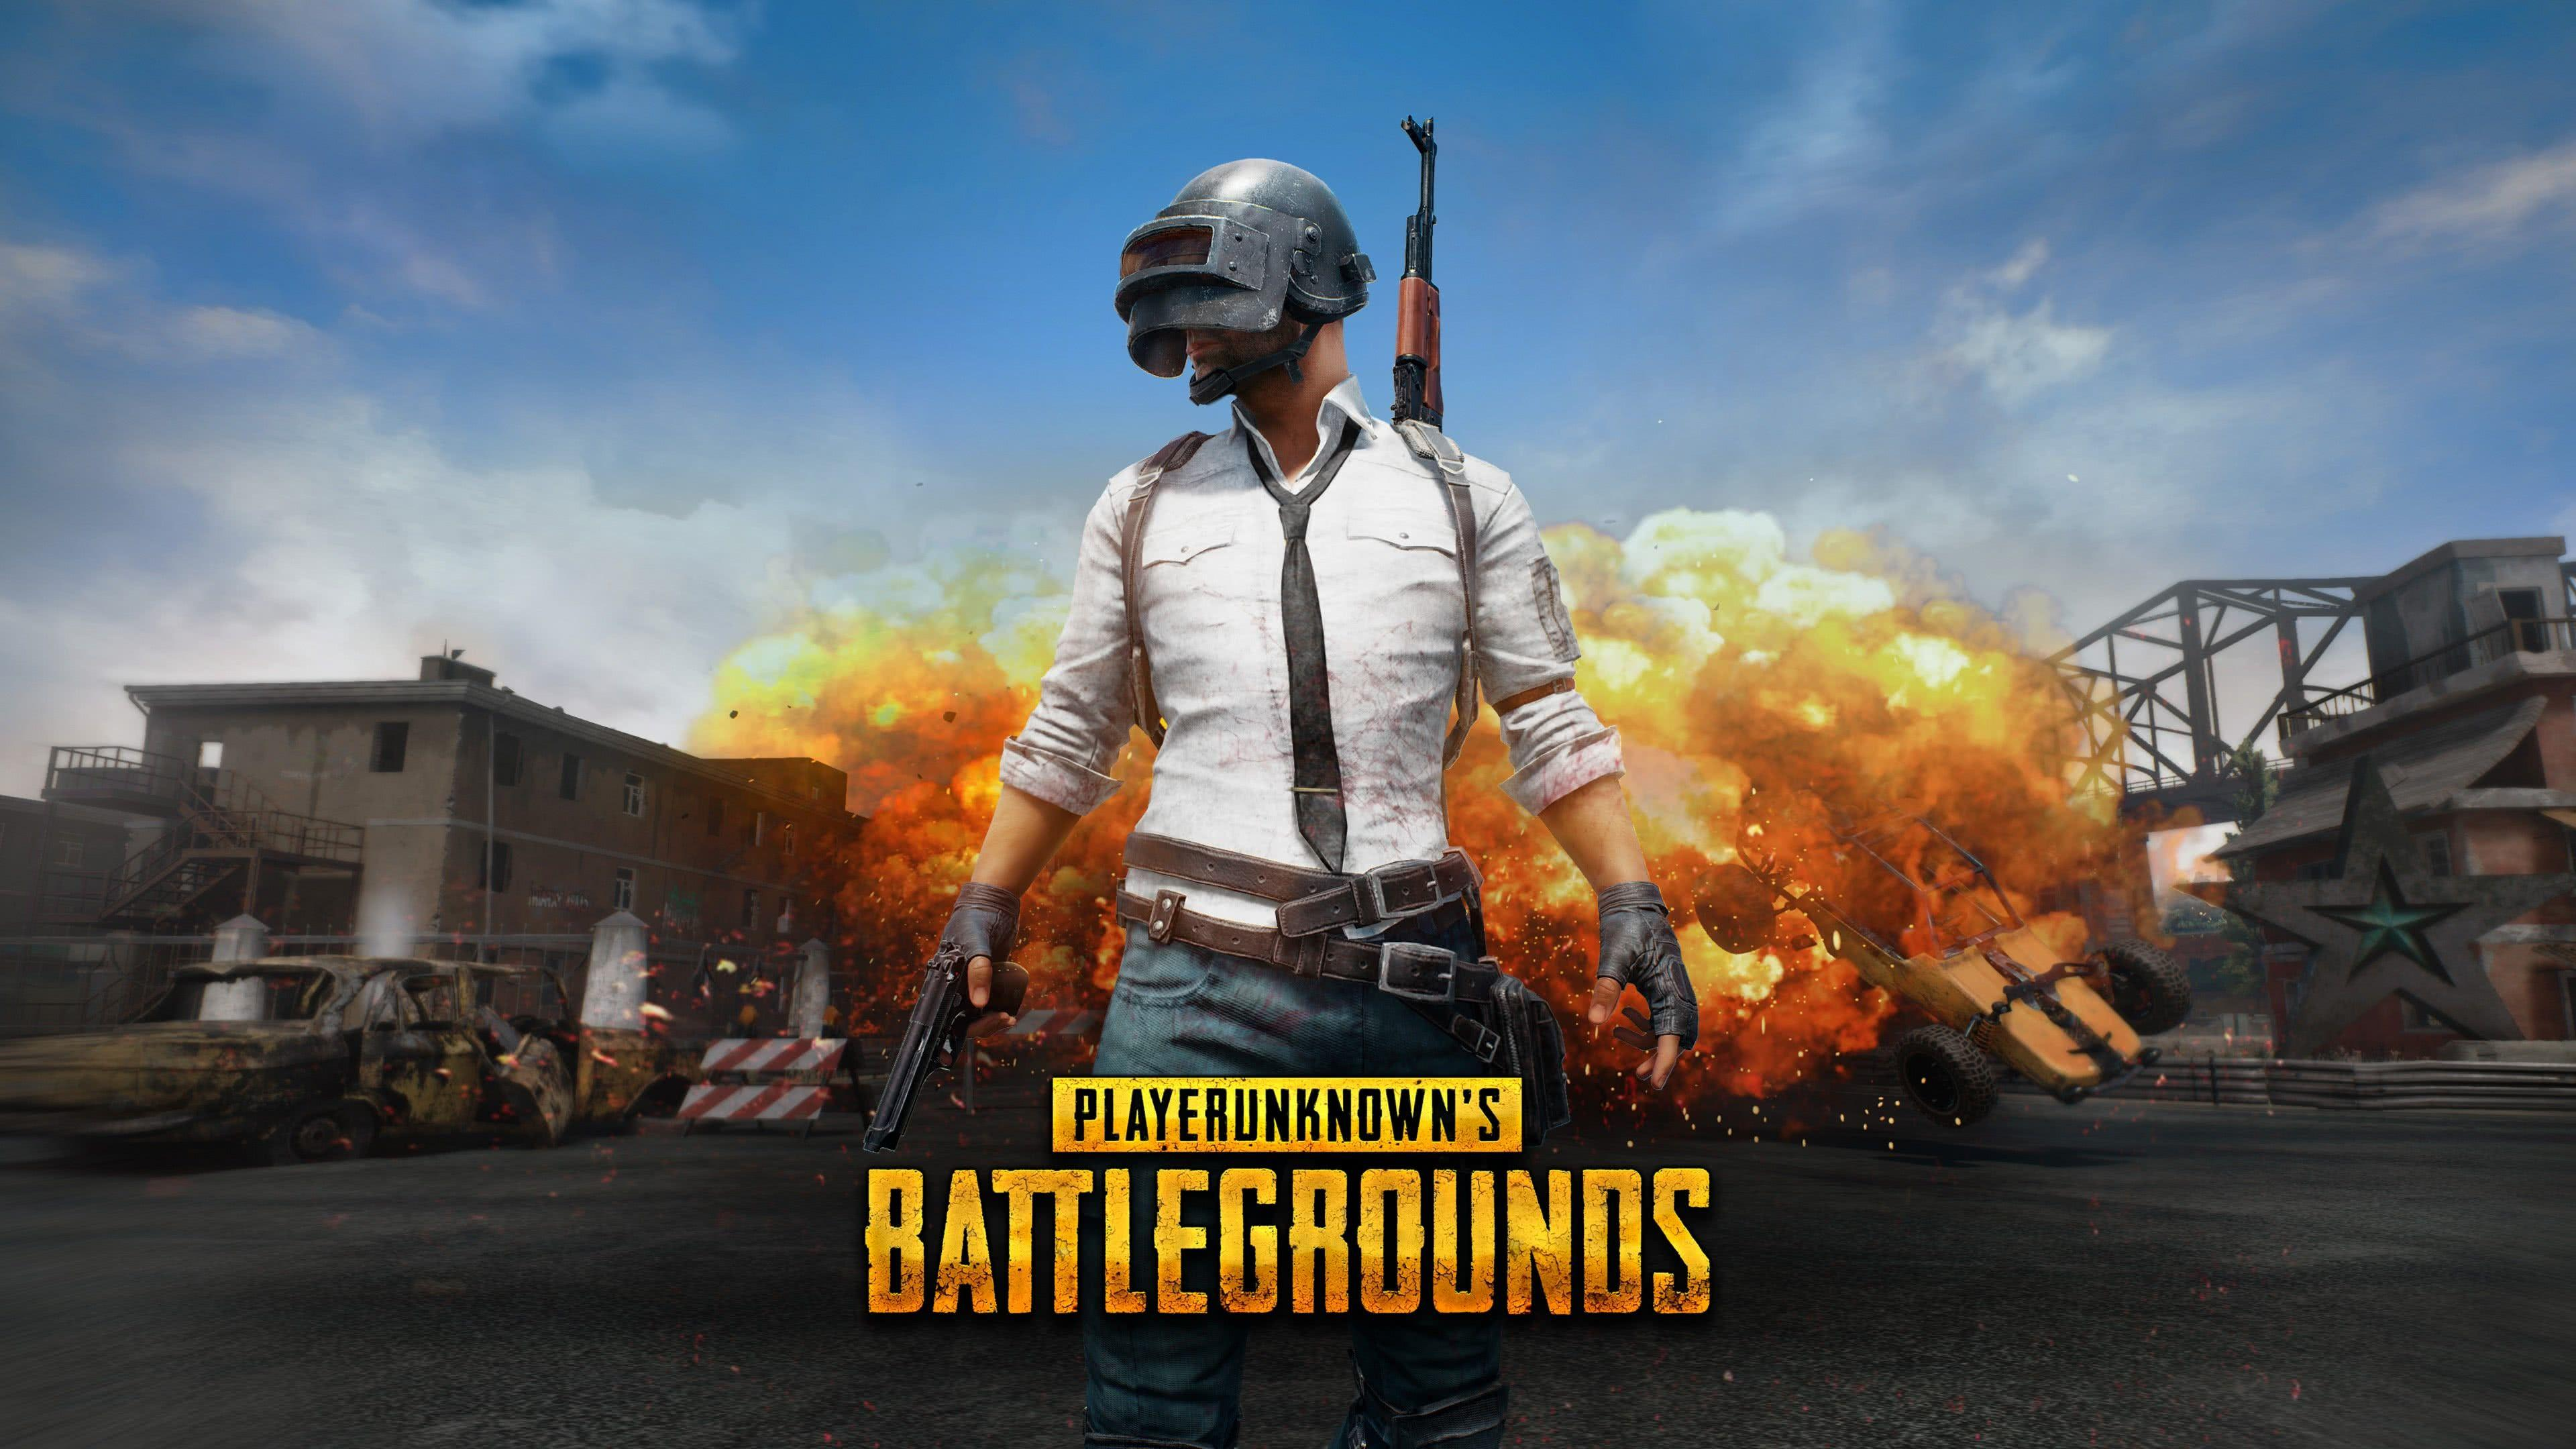 Pubg Wallpapers: PUBG 4K Wallpapers